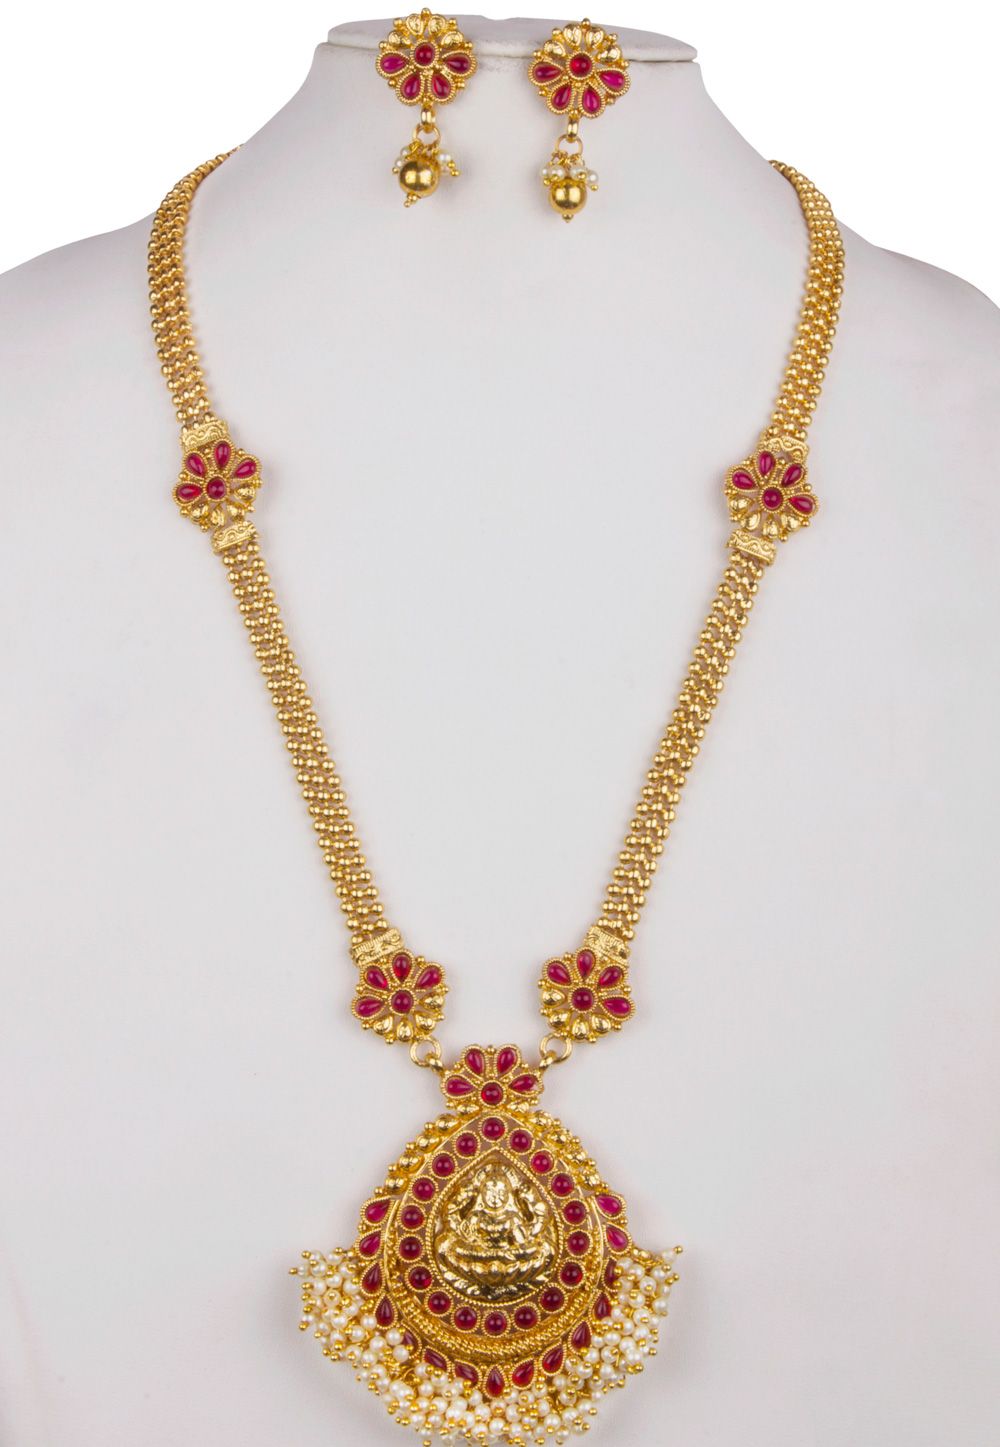 Pink Alloy Necklace With Earrings 157136